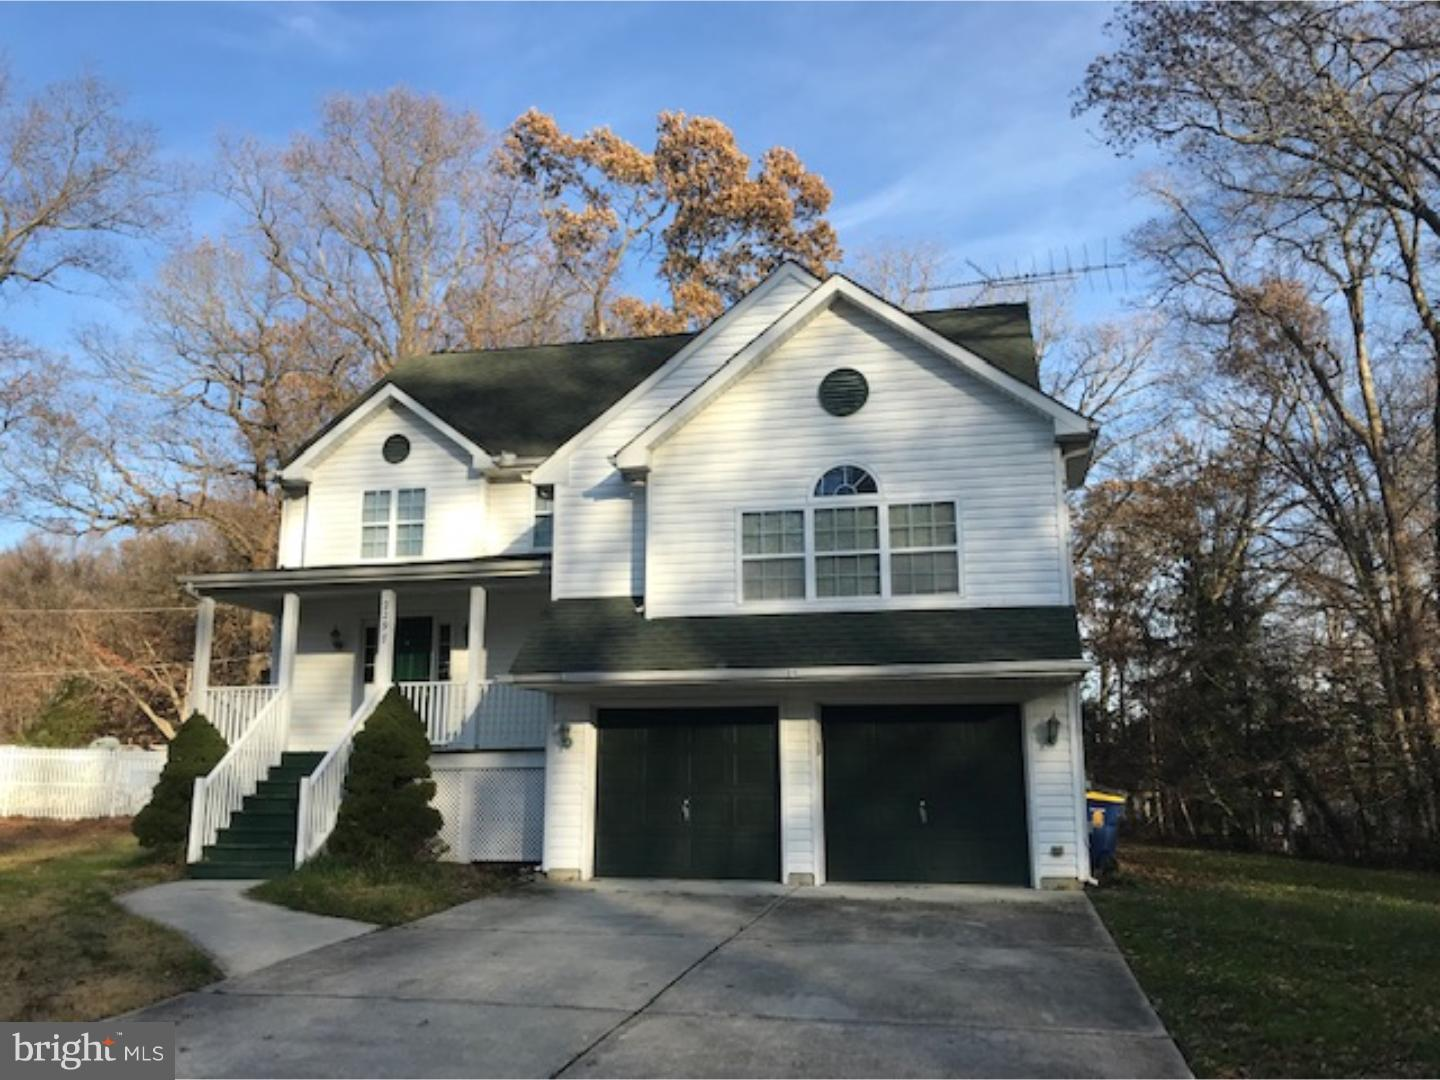 Single Family Home for Sale at 2297 S StreetATE Street Camden, Delaware 19901 United States